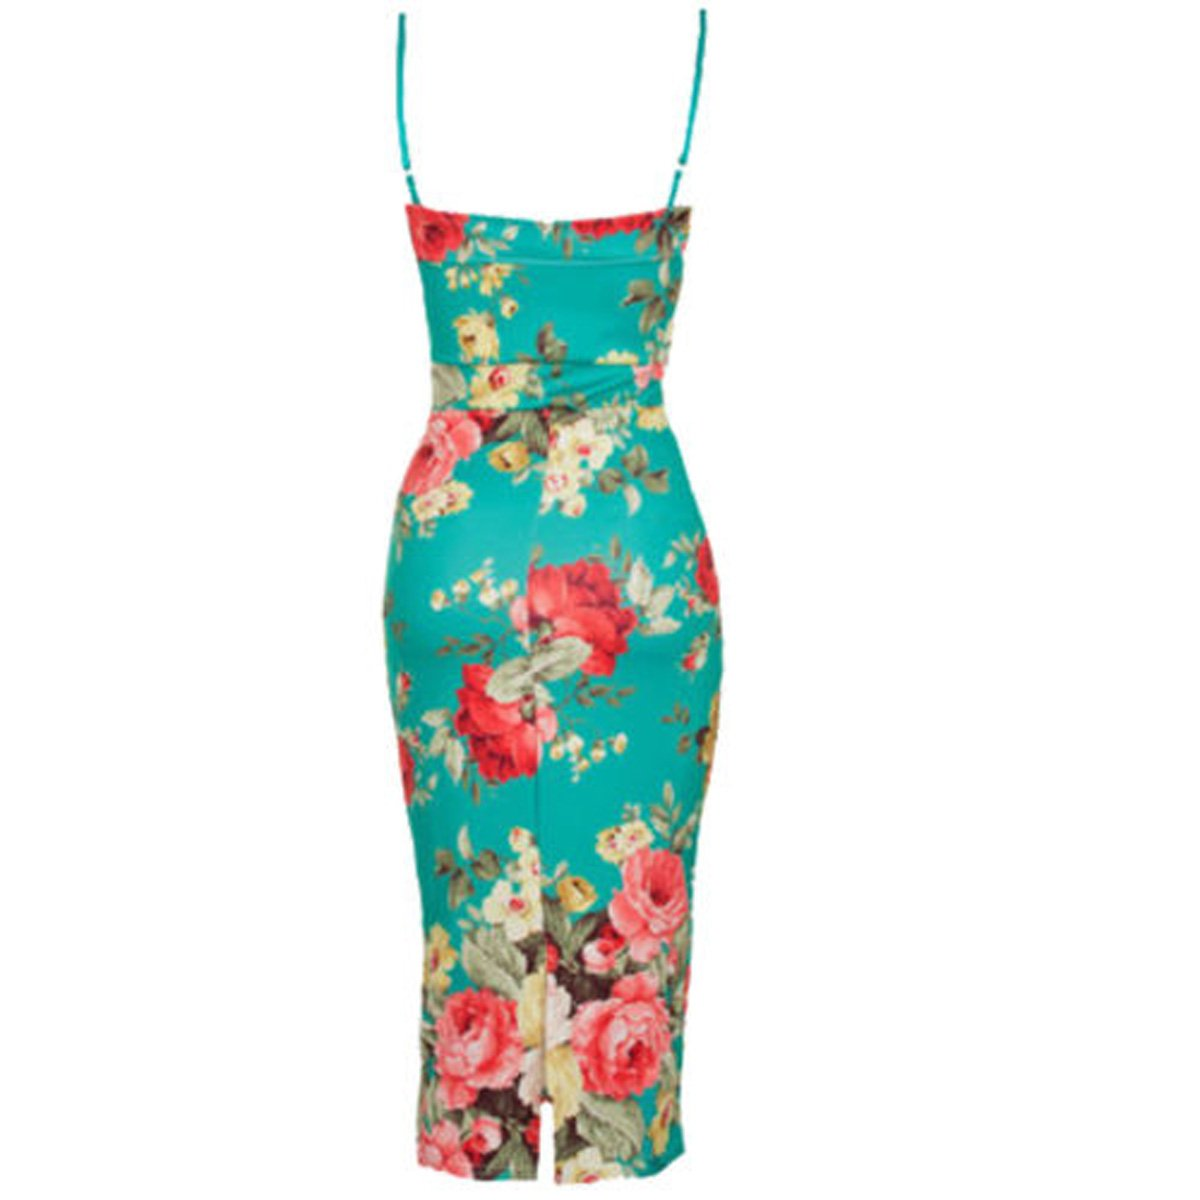 NEW ExDebenhams 8 10 Bardot Floral Rose Print Frill Bodycon Midi Dress Red White